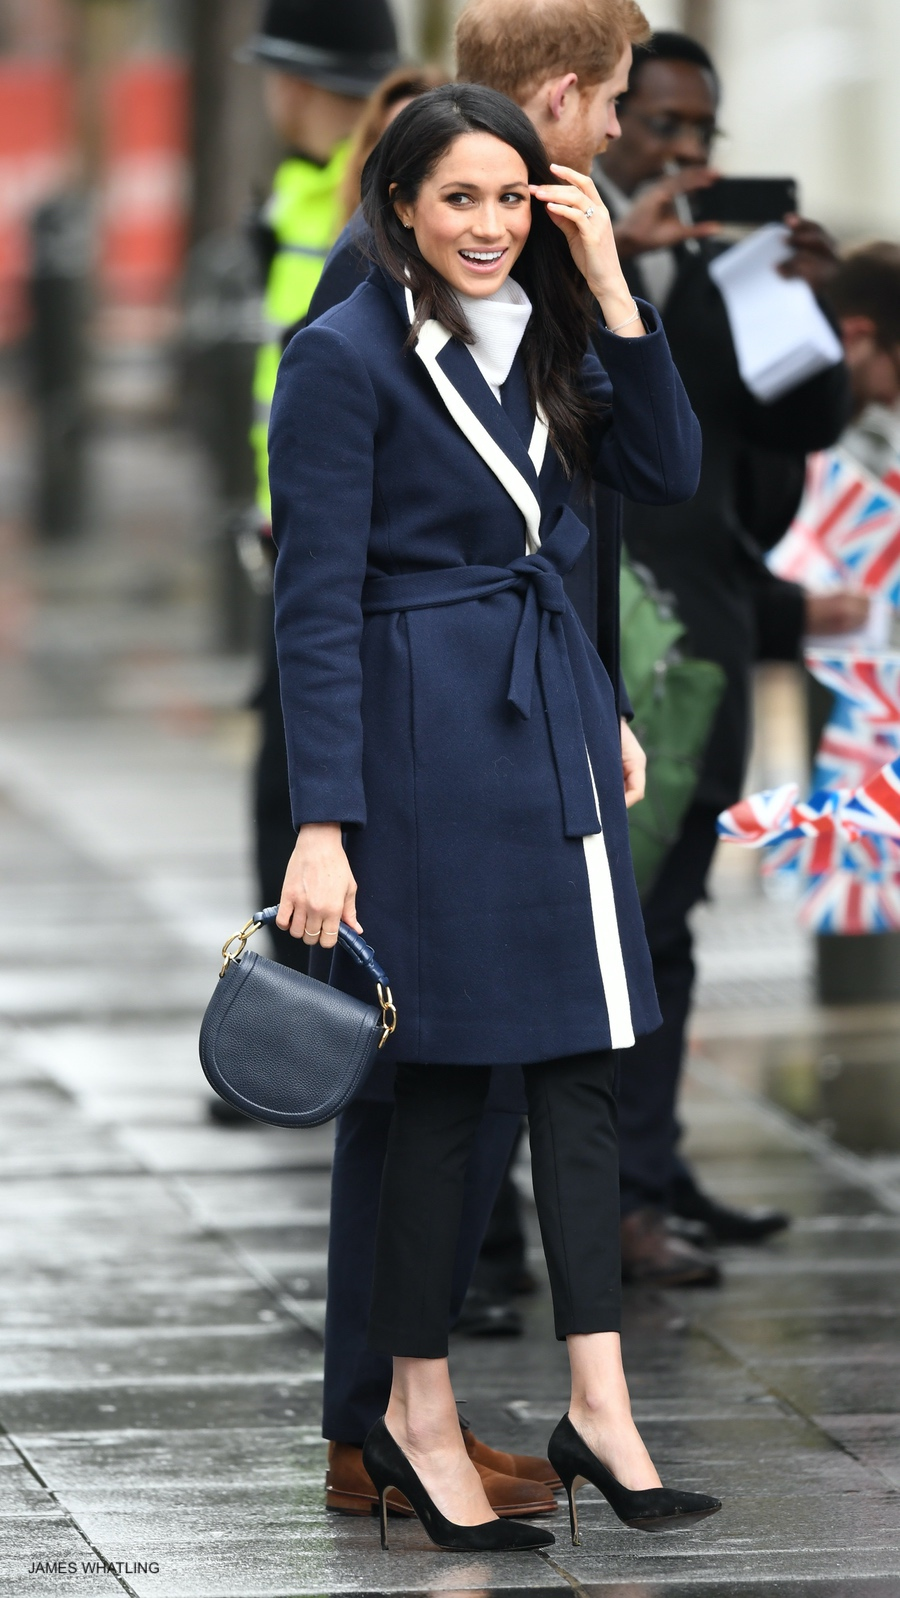 Meghan Markle visits Birmingham wearing a blue coat by J.Crew